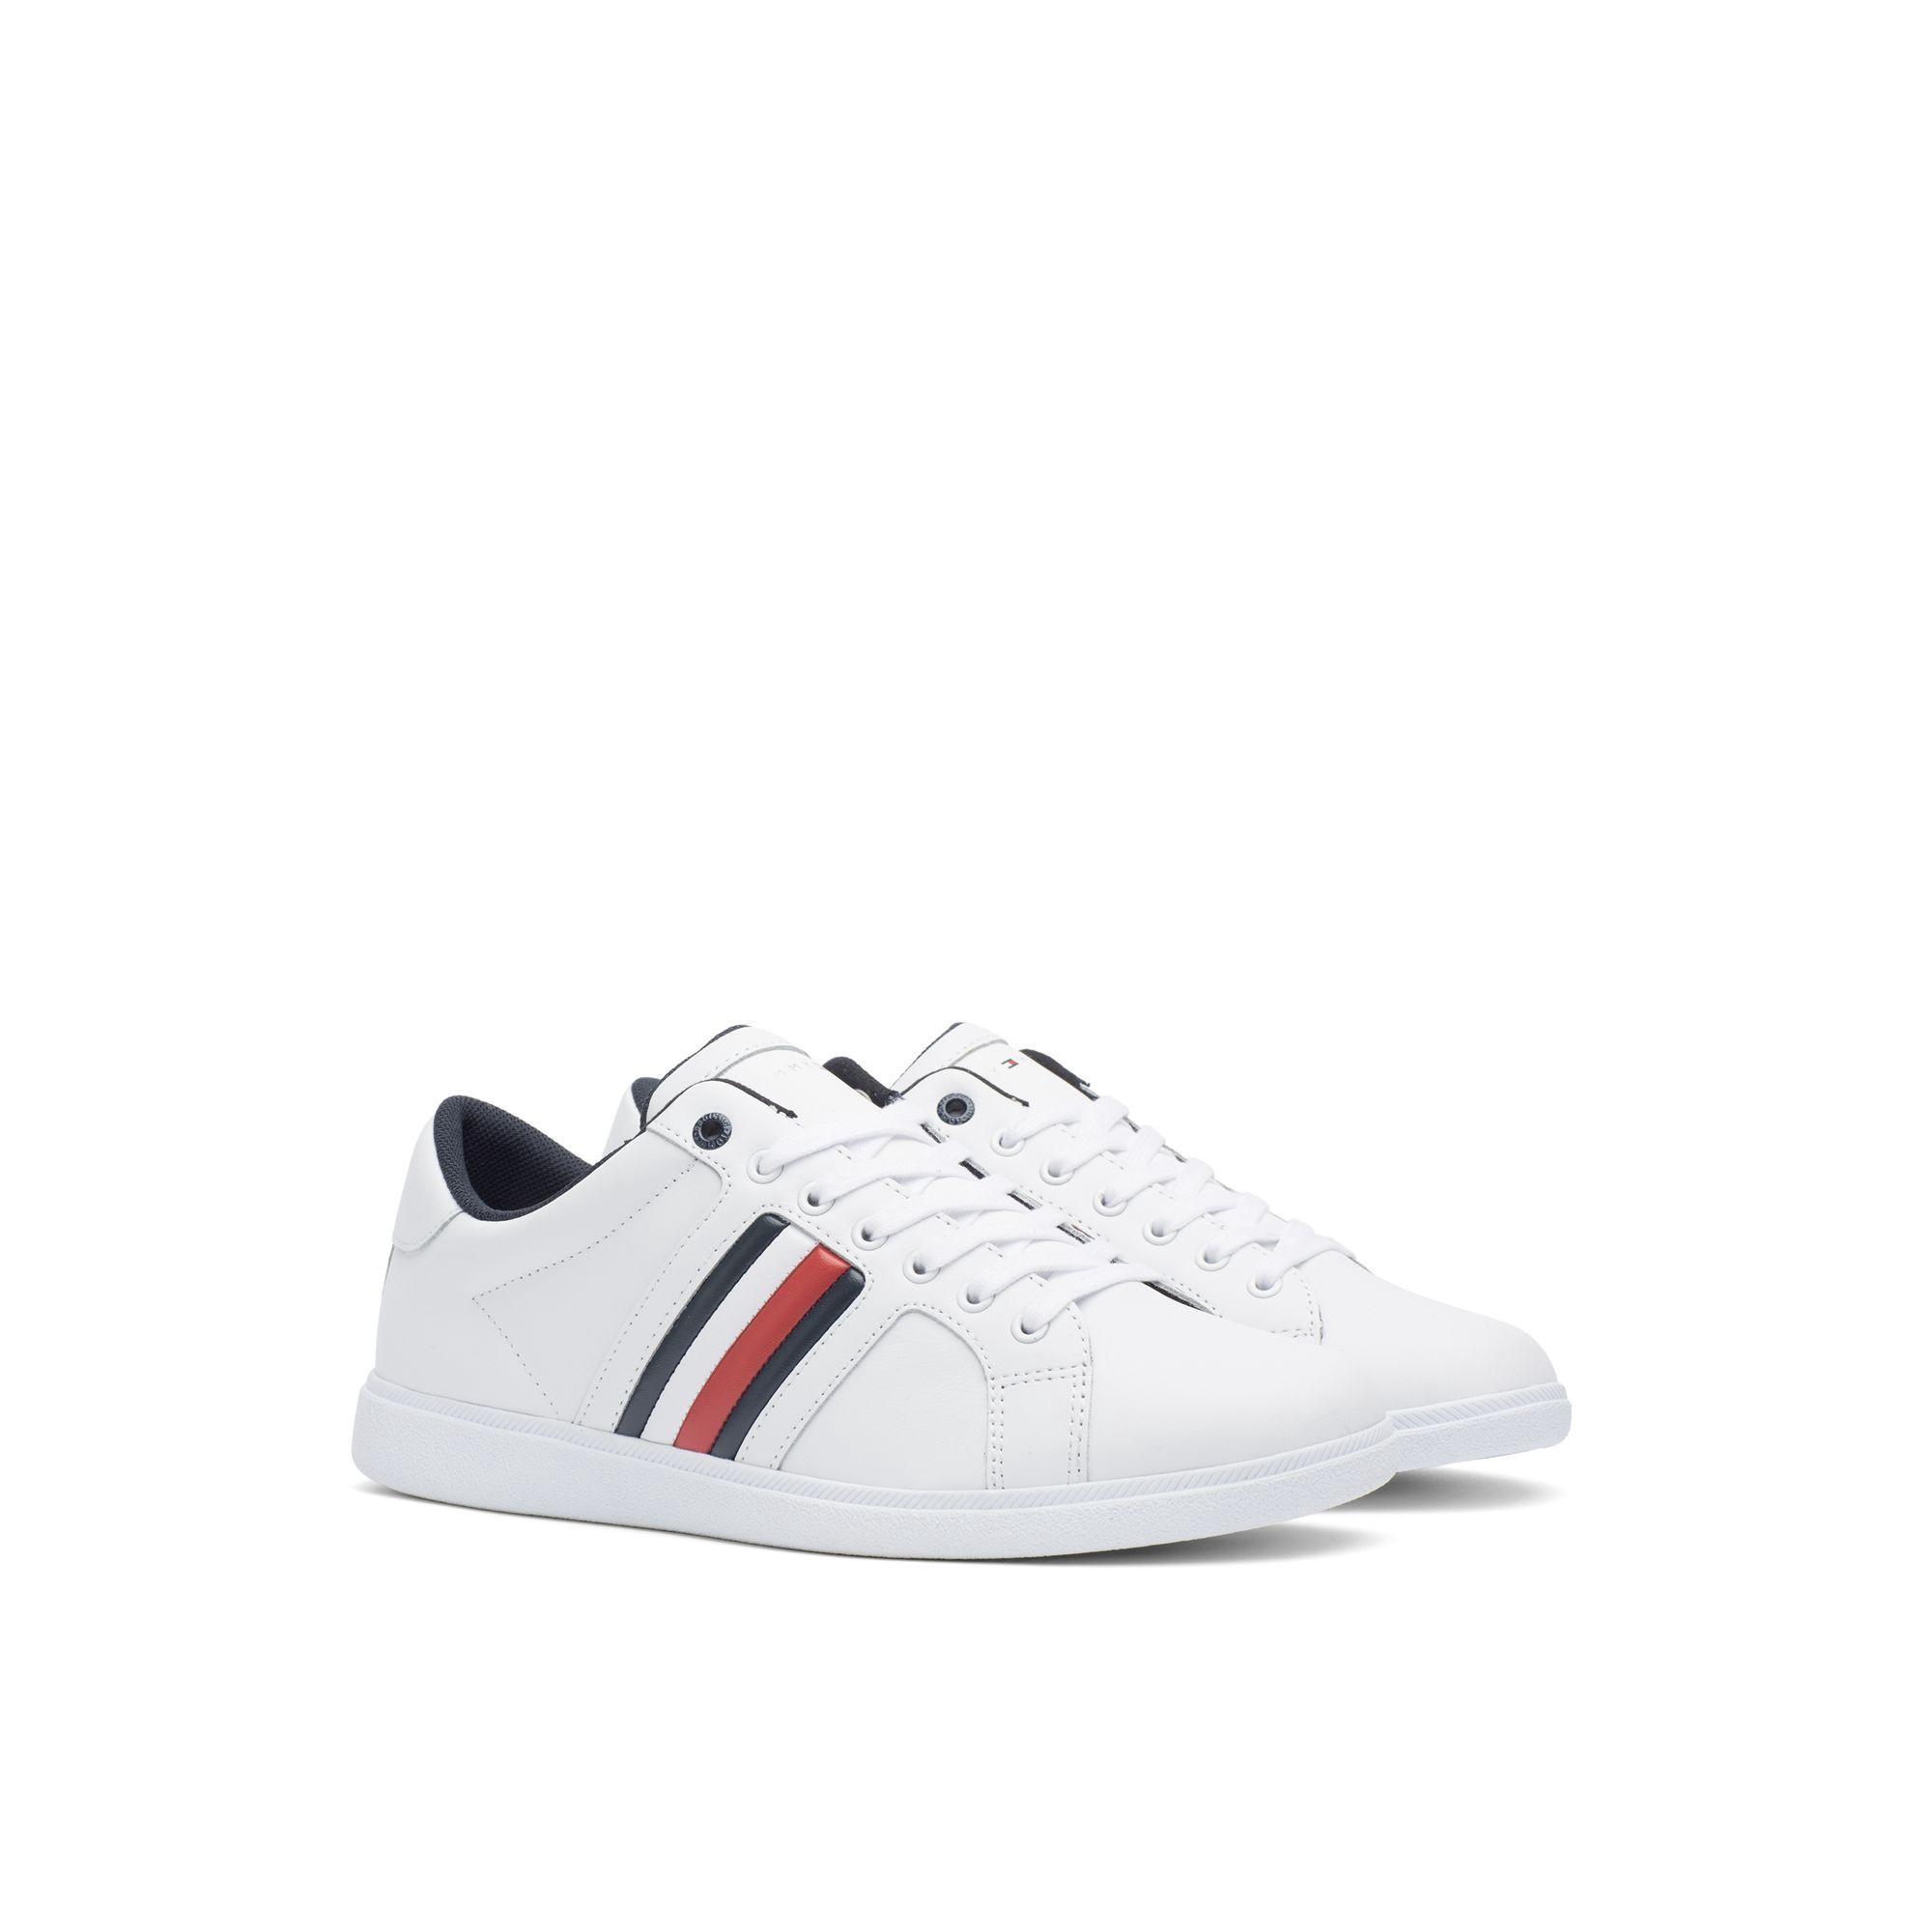 4f2cb718be3bc9 Tommy Hilfiger Leather Sneaker - White